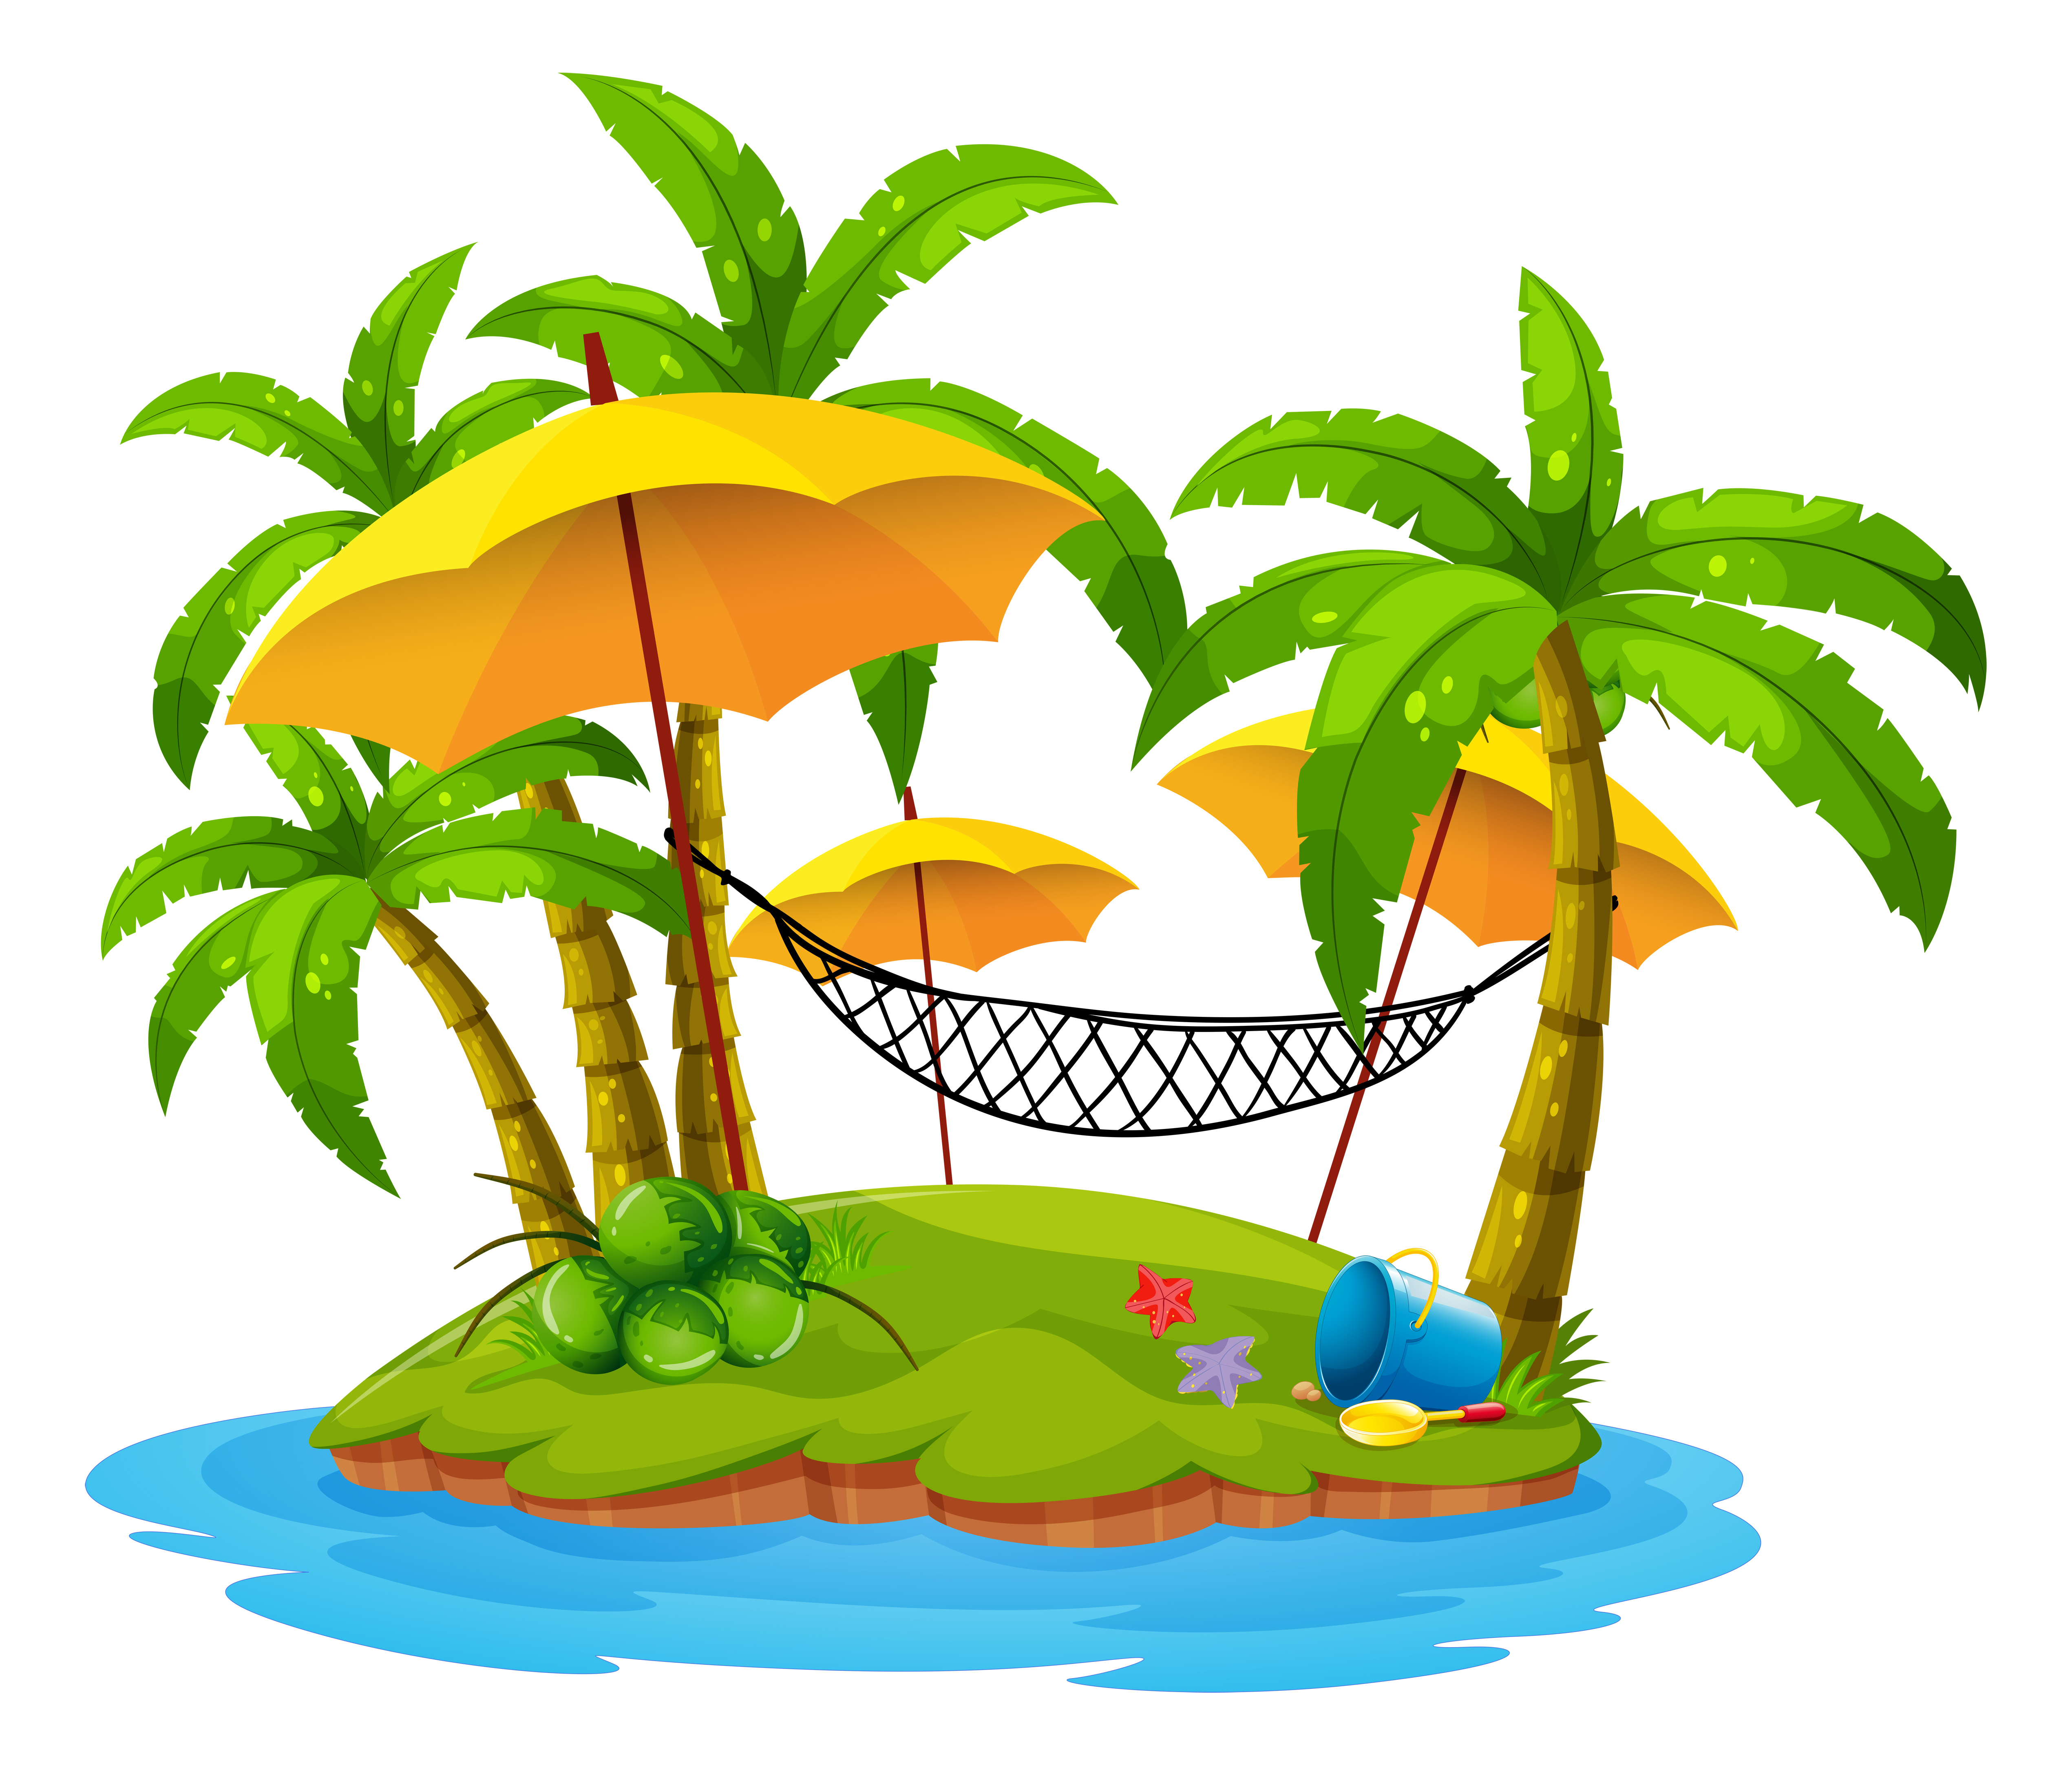 Coconut trees and hammock on island - Download Free ...